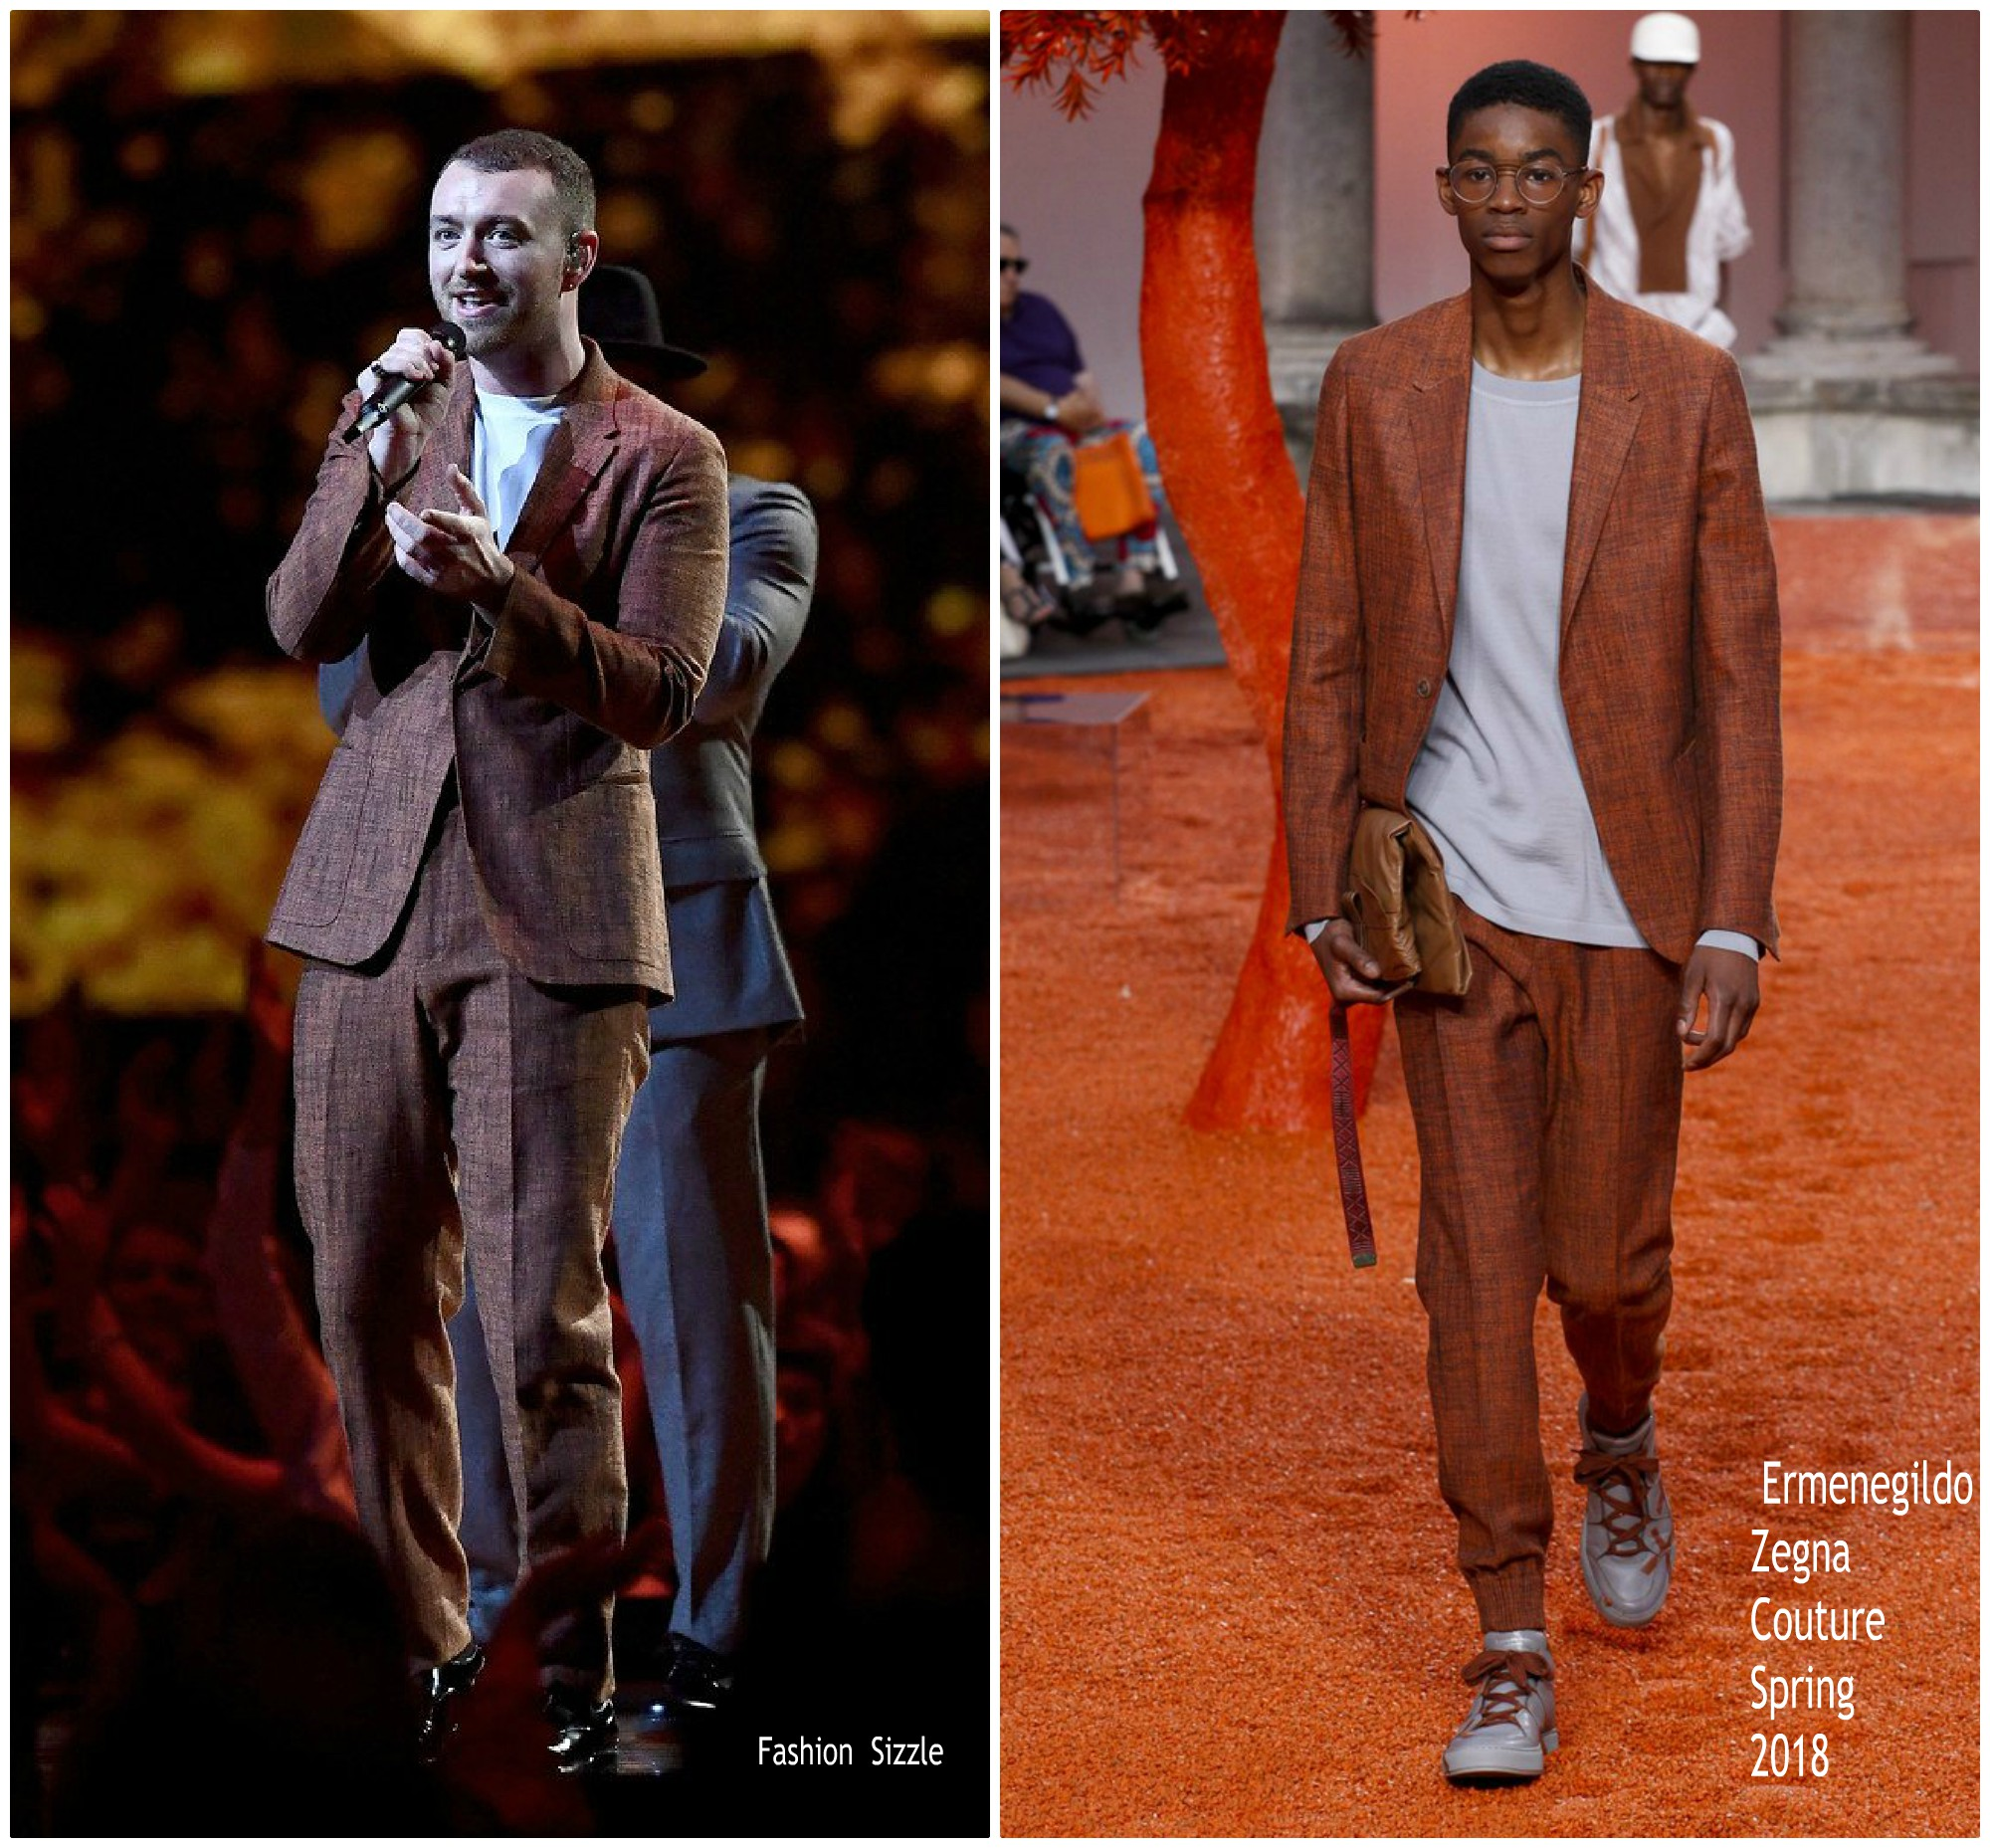 sam-smith=in-ermenegildo-zegna-couture-performing-brit-awards-2018